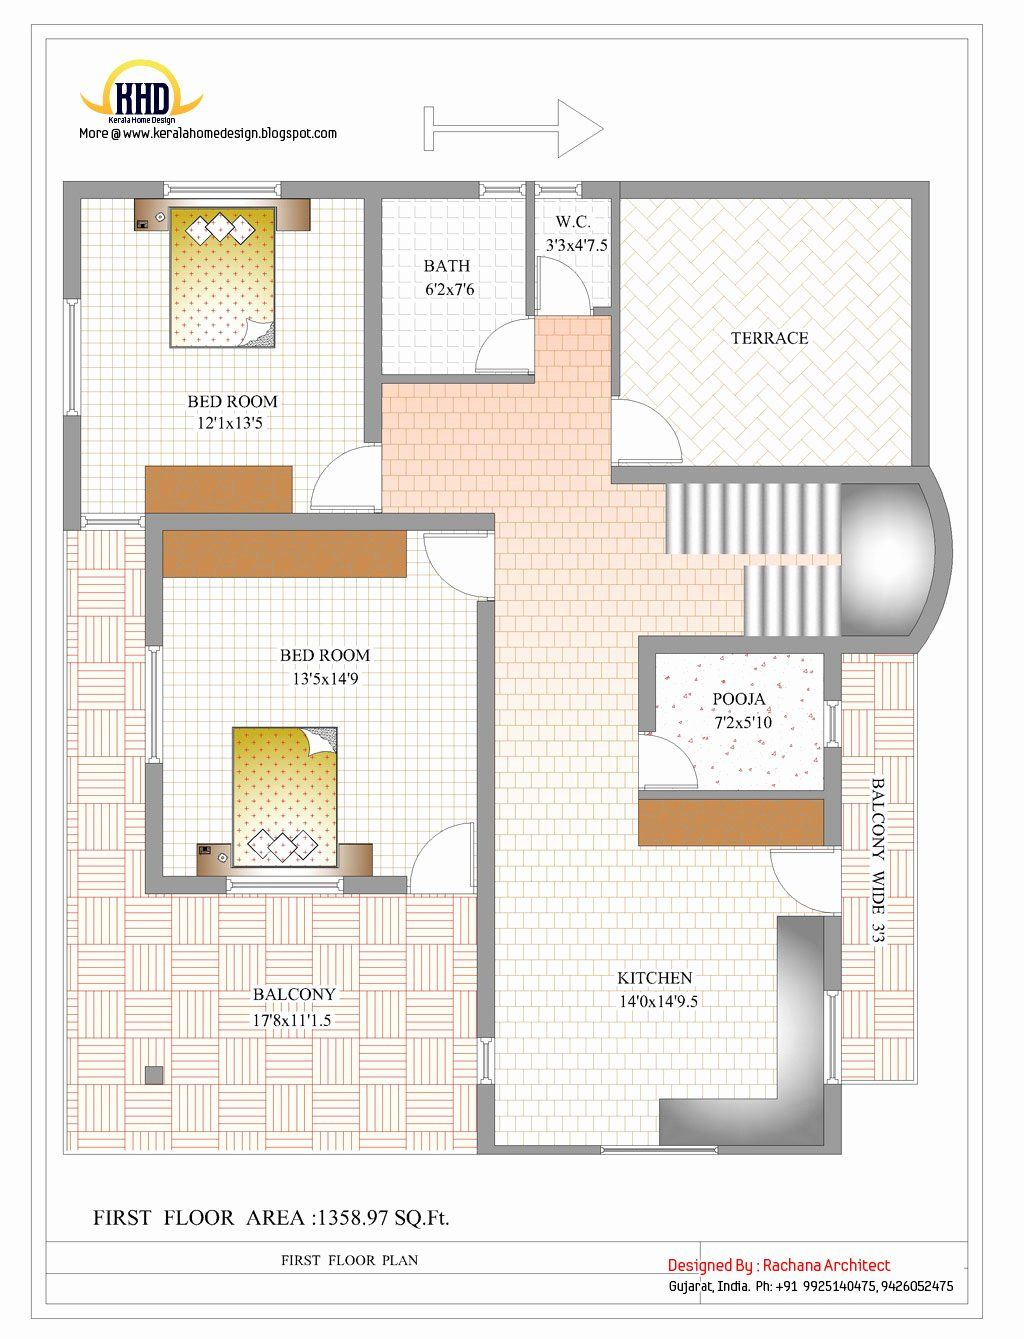 300 Sq Ft House Plans Best Of 300 Sq Ft Duplex House Plans In India Escortsea In 2020 Small House Elevation Design House Layout Plans Duplex House Design